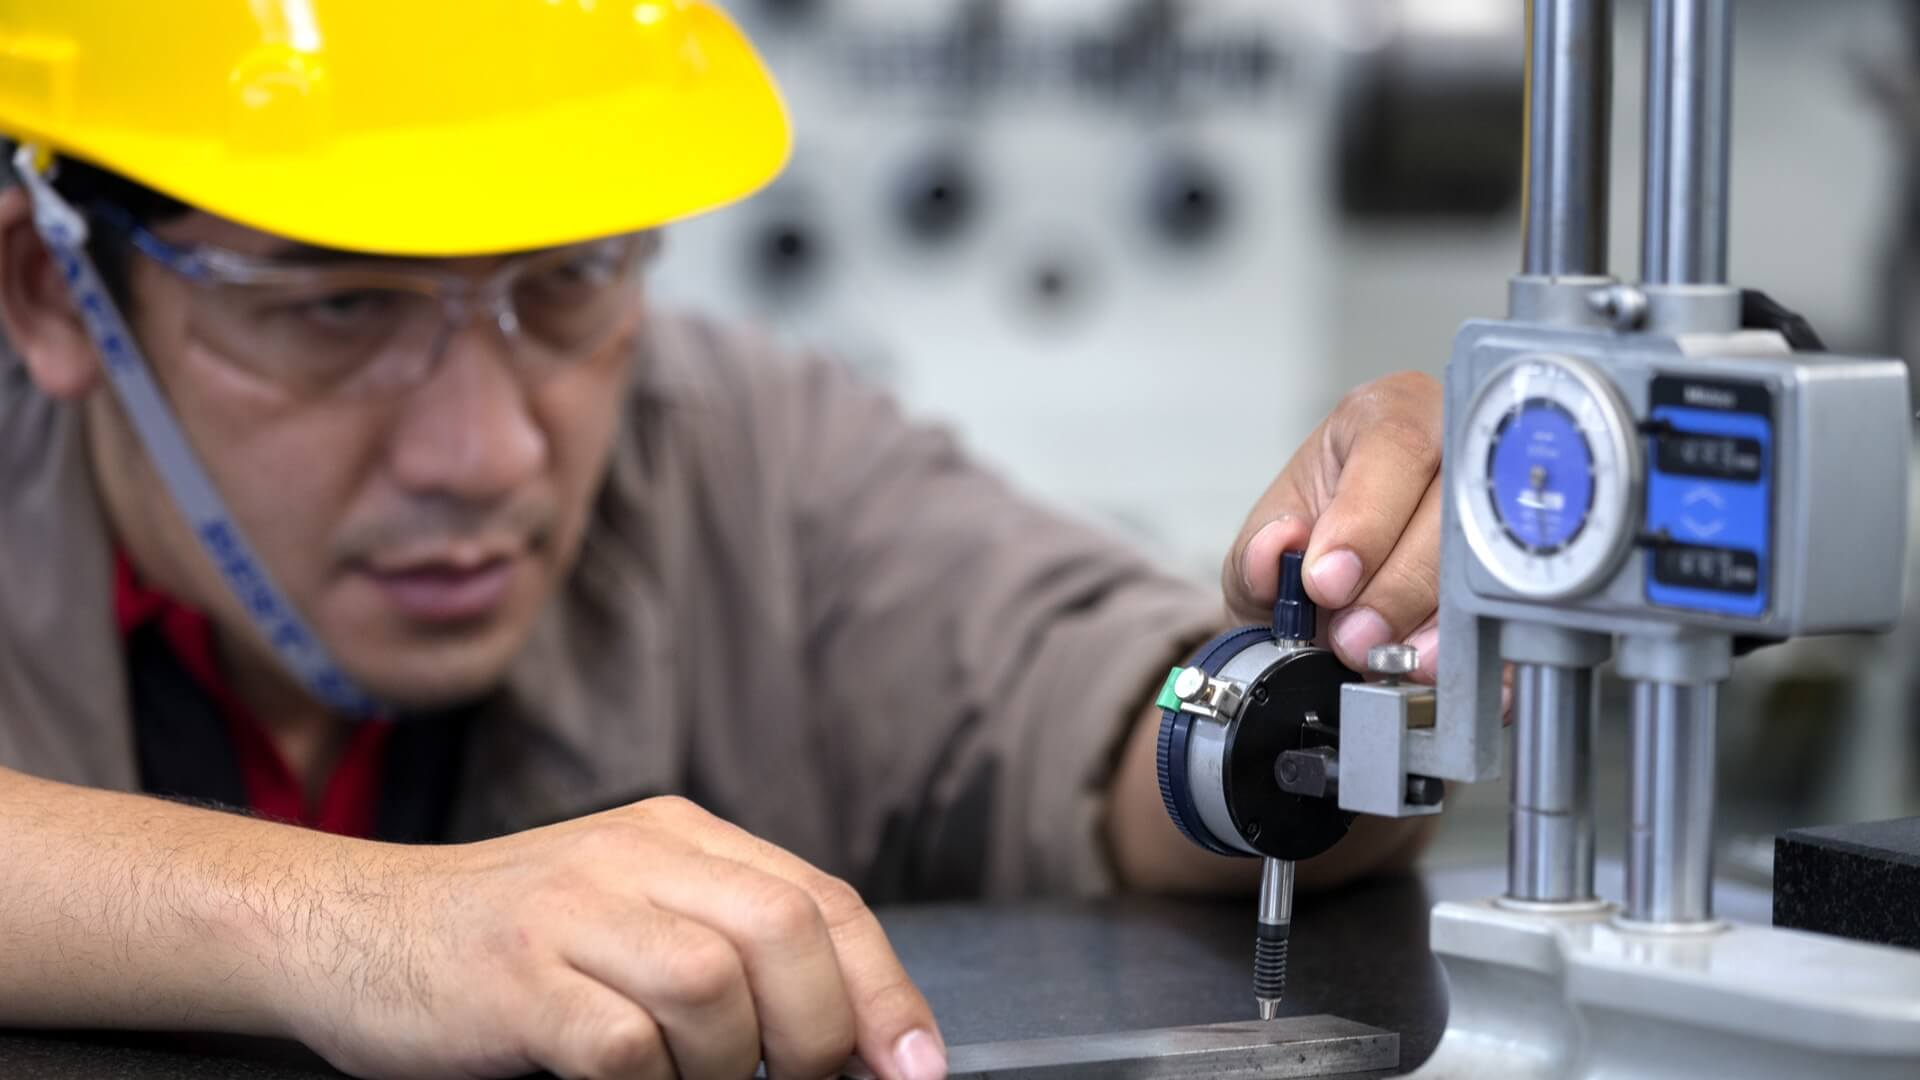 QC inspection during manufacturing